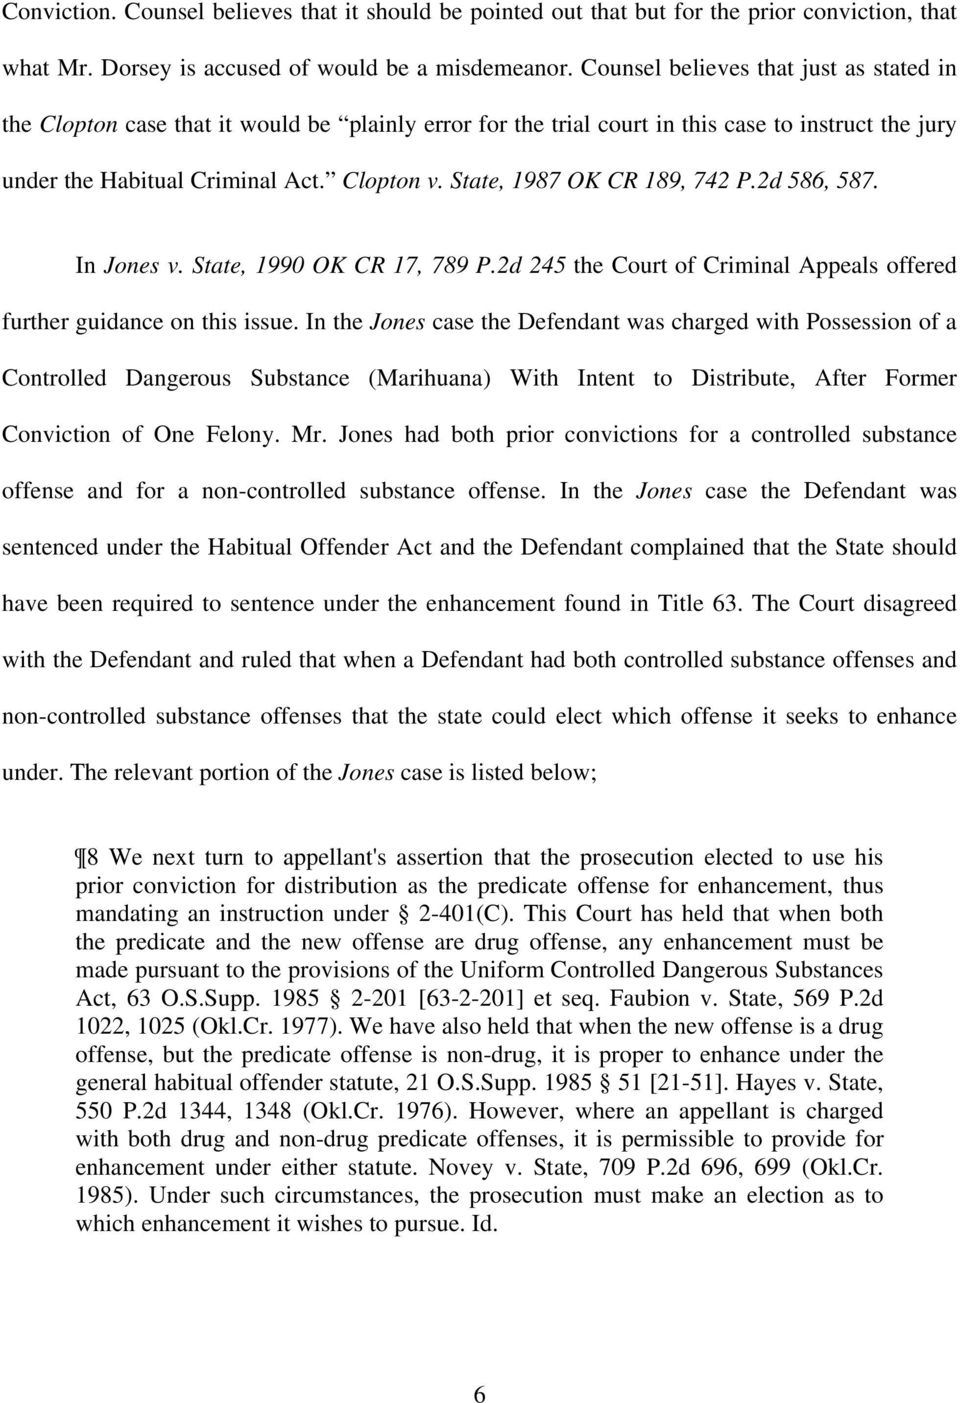 State, 1987 OK CR 189, 742 P.2d 586, 587. In Jones v. State, 1990 OK CR 17, 789 P.2d 245 the Court of Criminal Appeals offered further guidance on this issue.